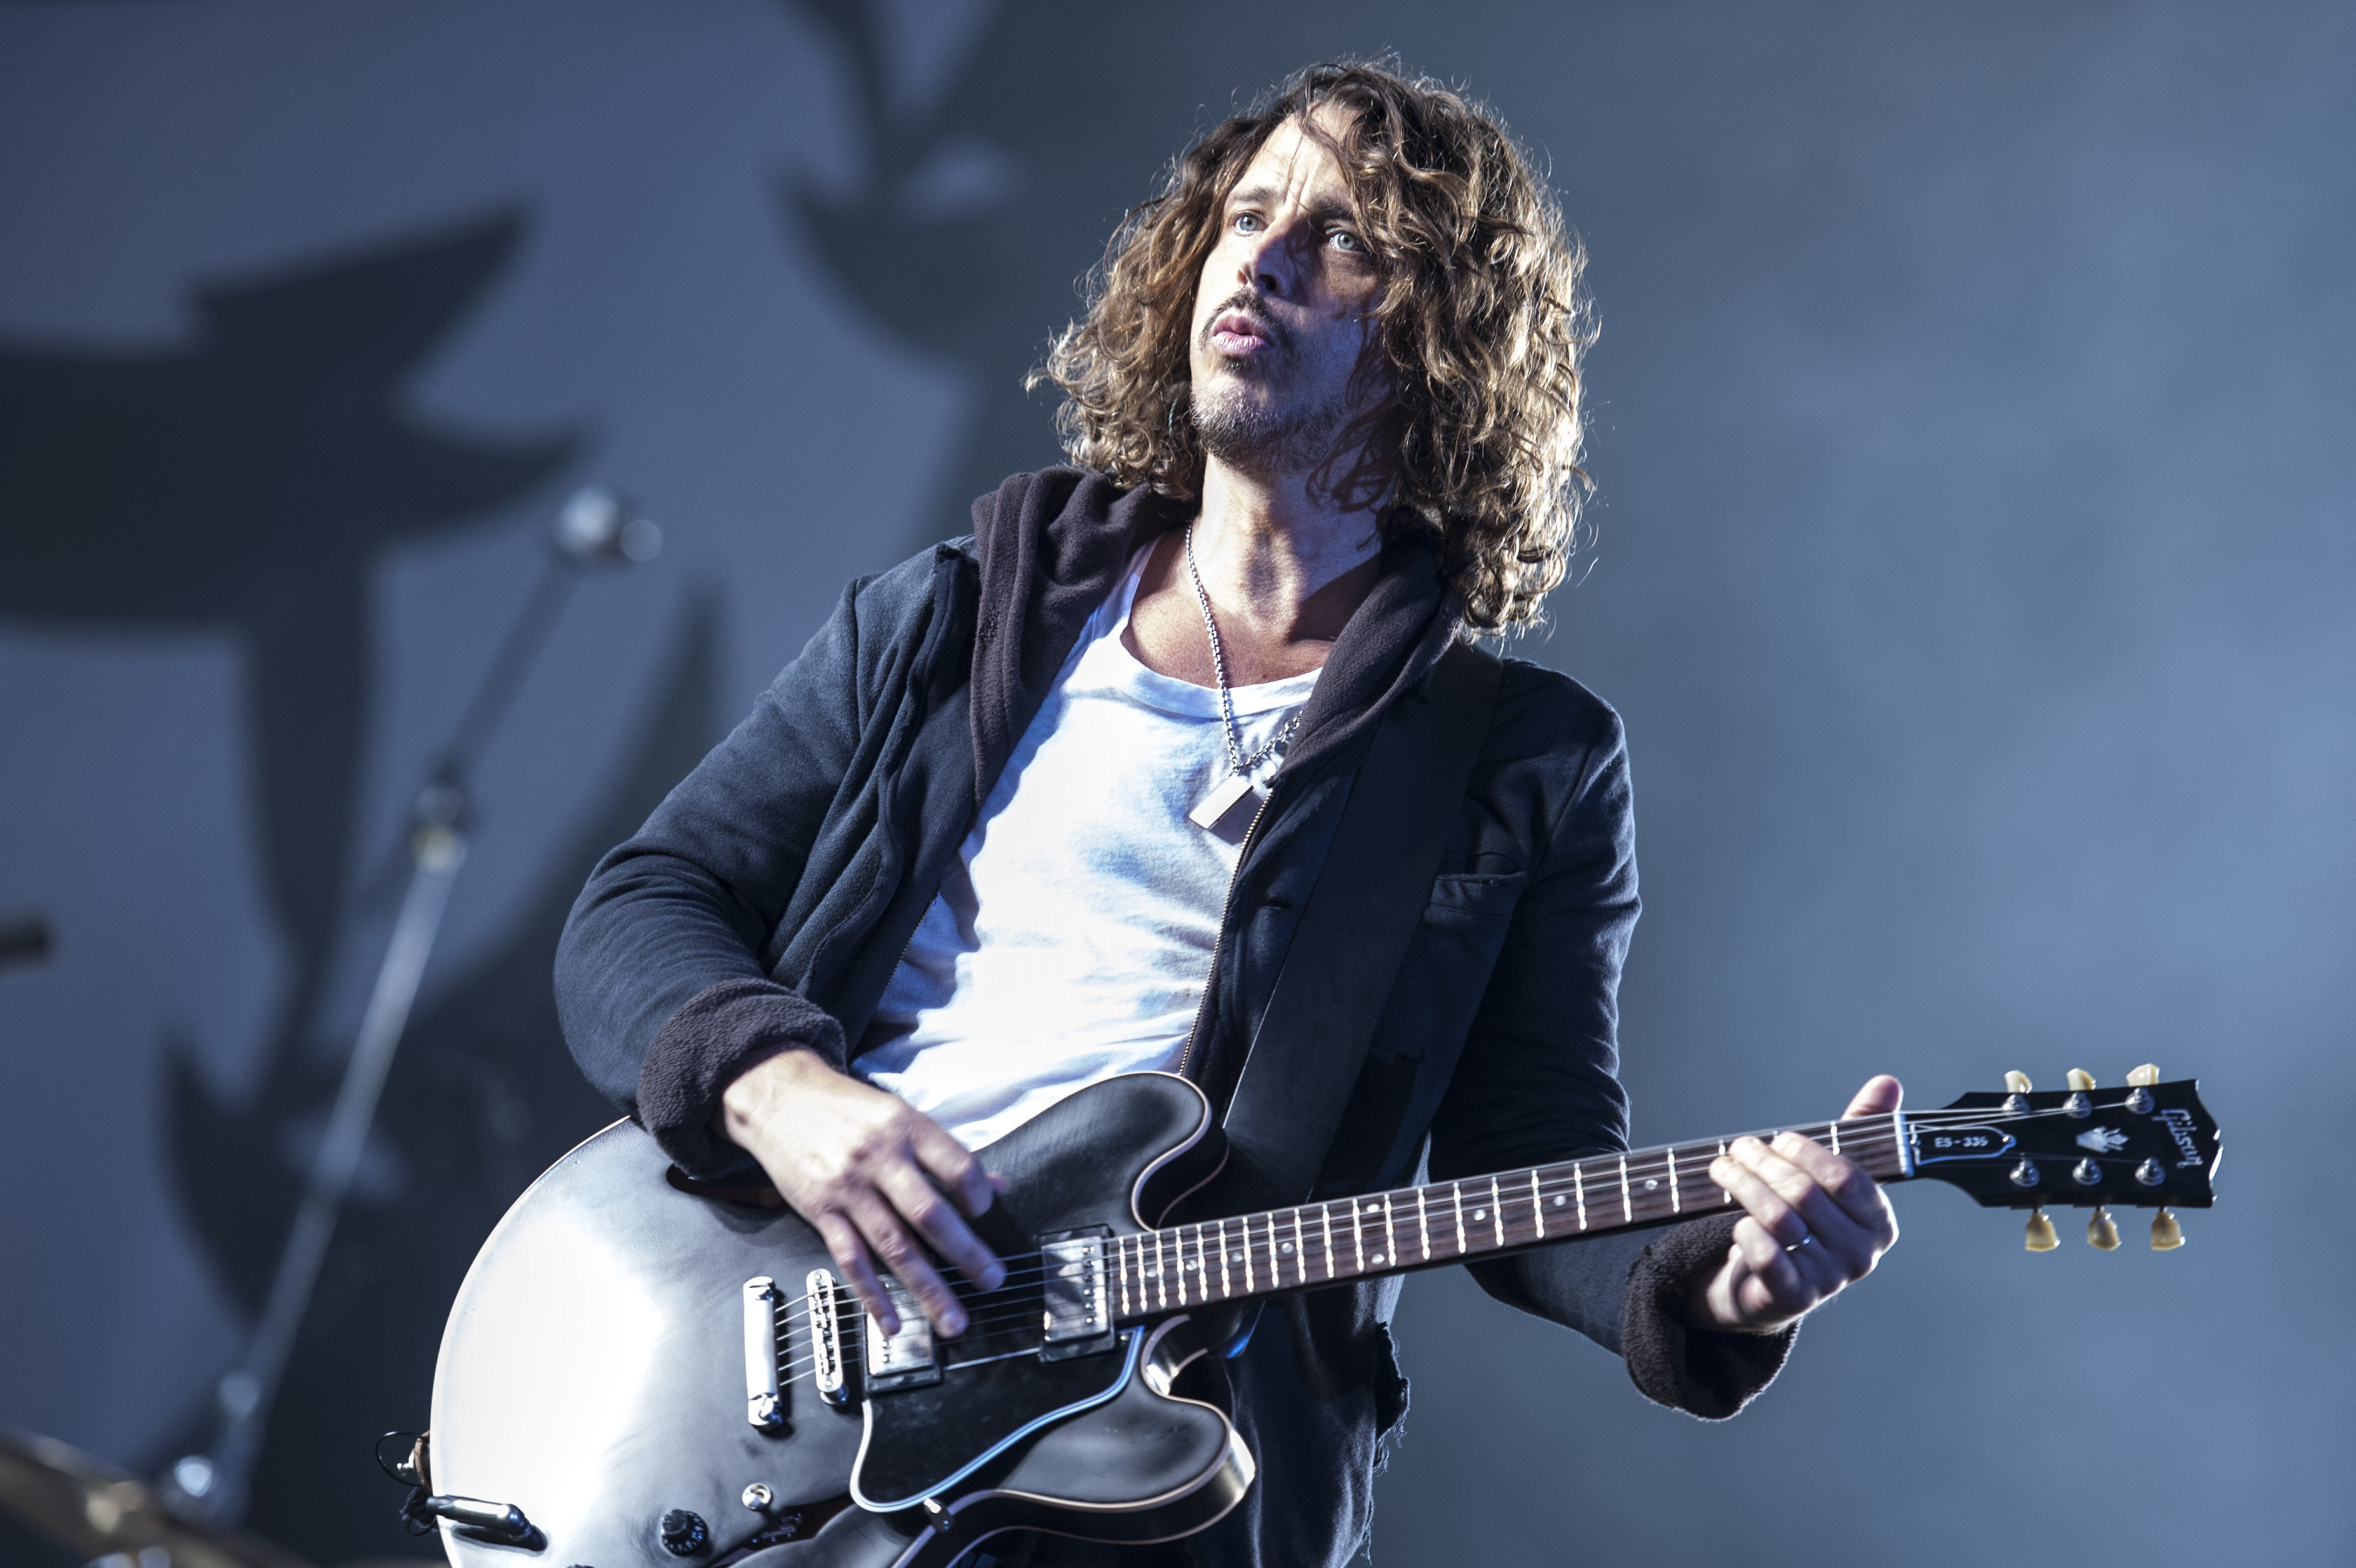 petition-to-name-black-hole-after-chris-cornell